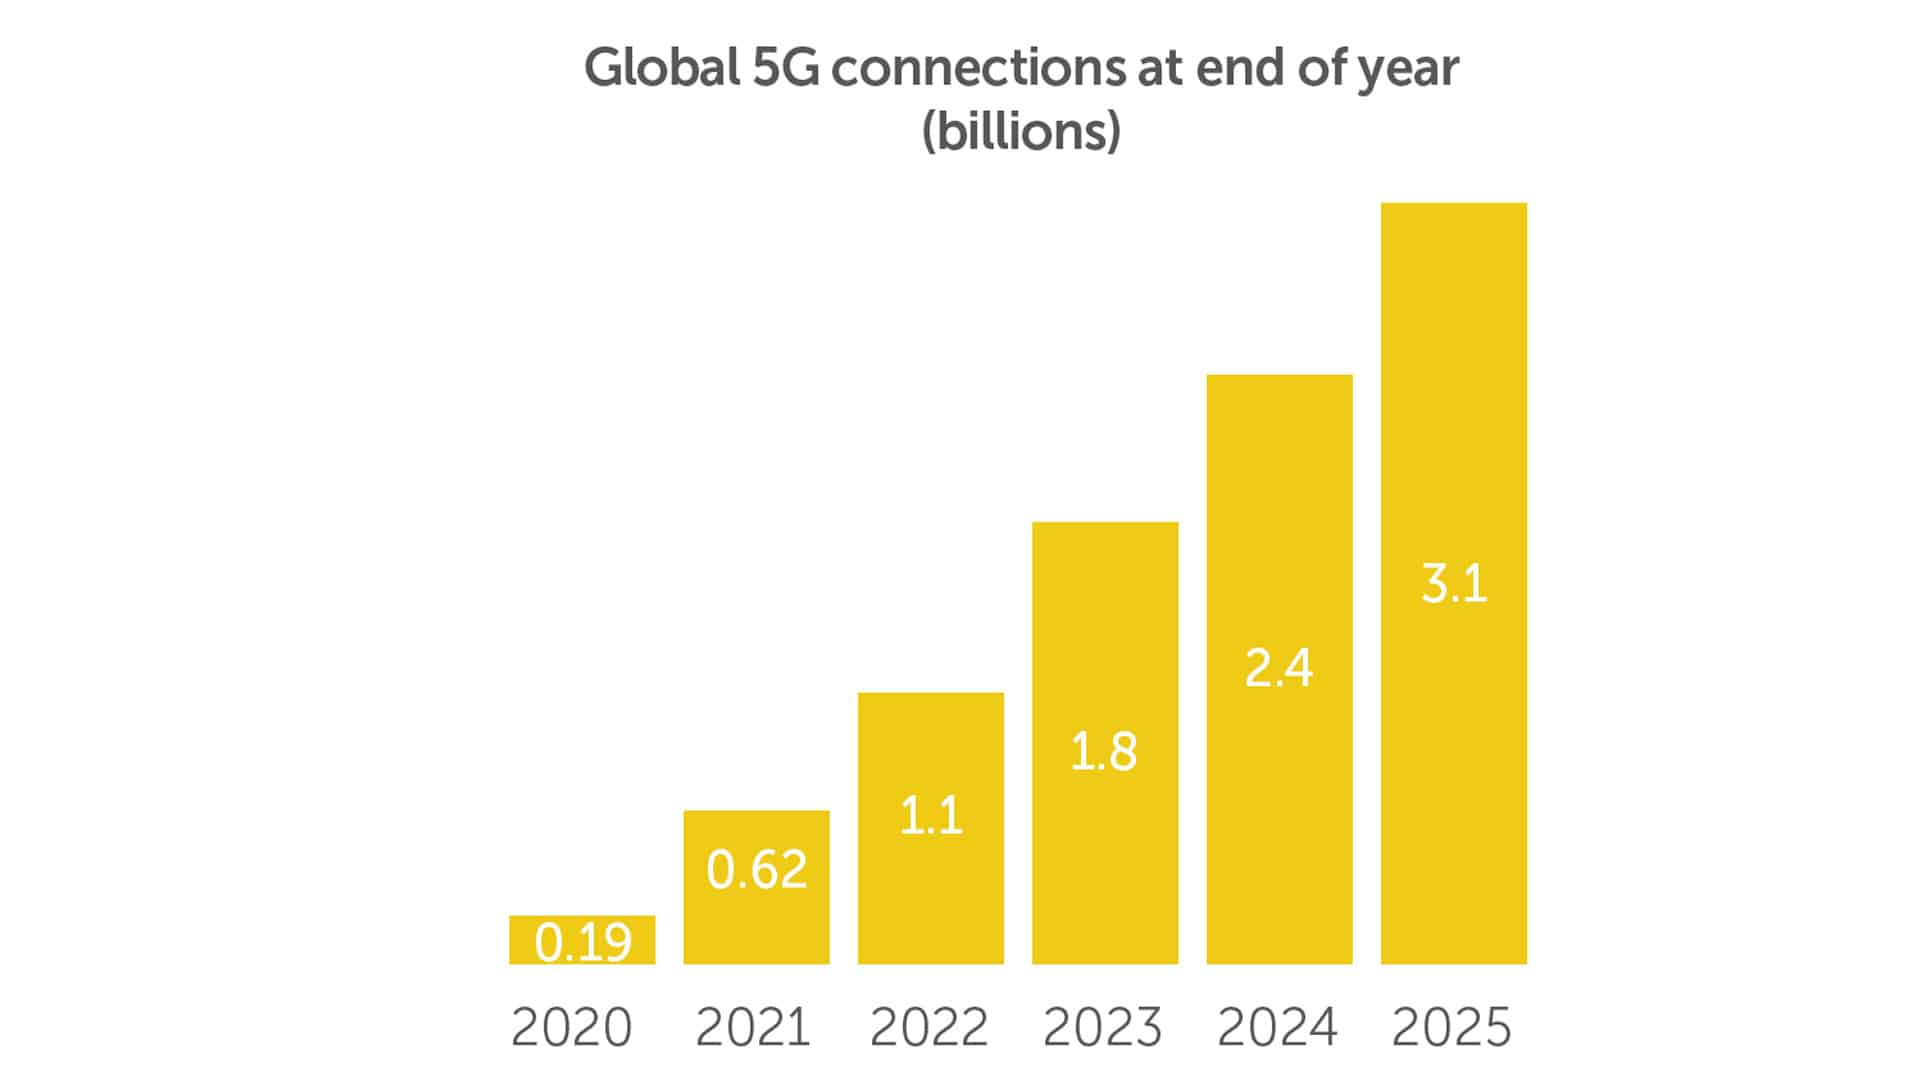 5G will be essential for XR Glasses but Qualcomm is overly optimistic about many will have access.